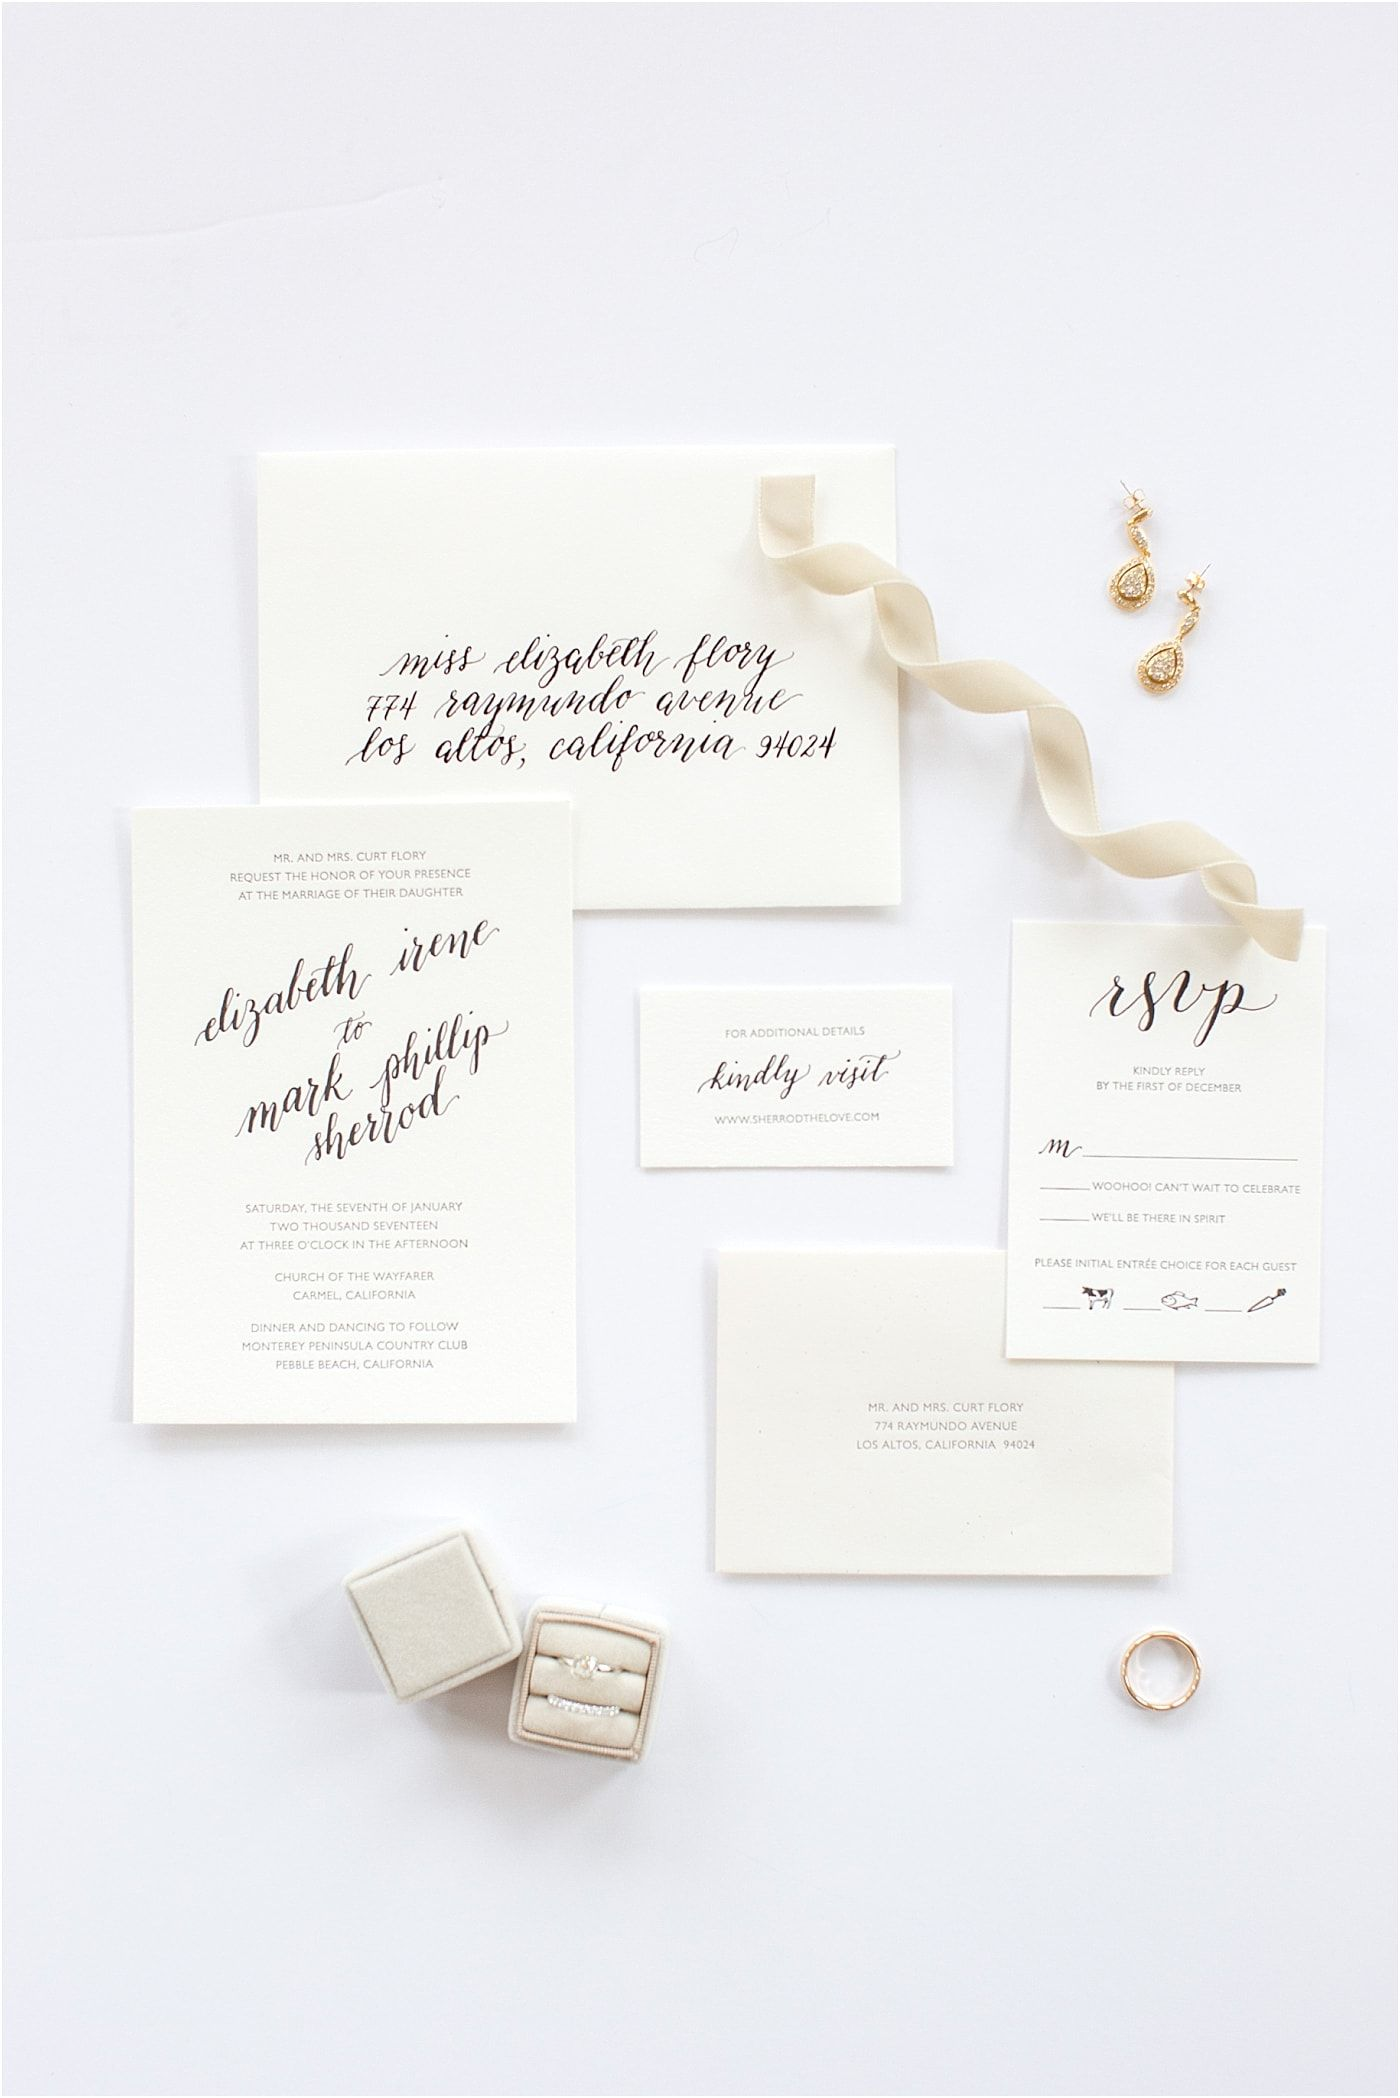 Shine custom wedding invitation suite | Mrs Box | Styled Board | How to style an invitation suite |  Monterey Peninsula Country Club Wedding